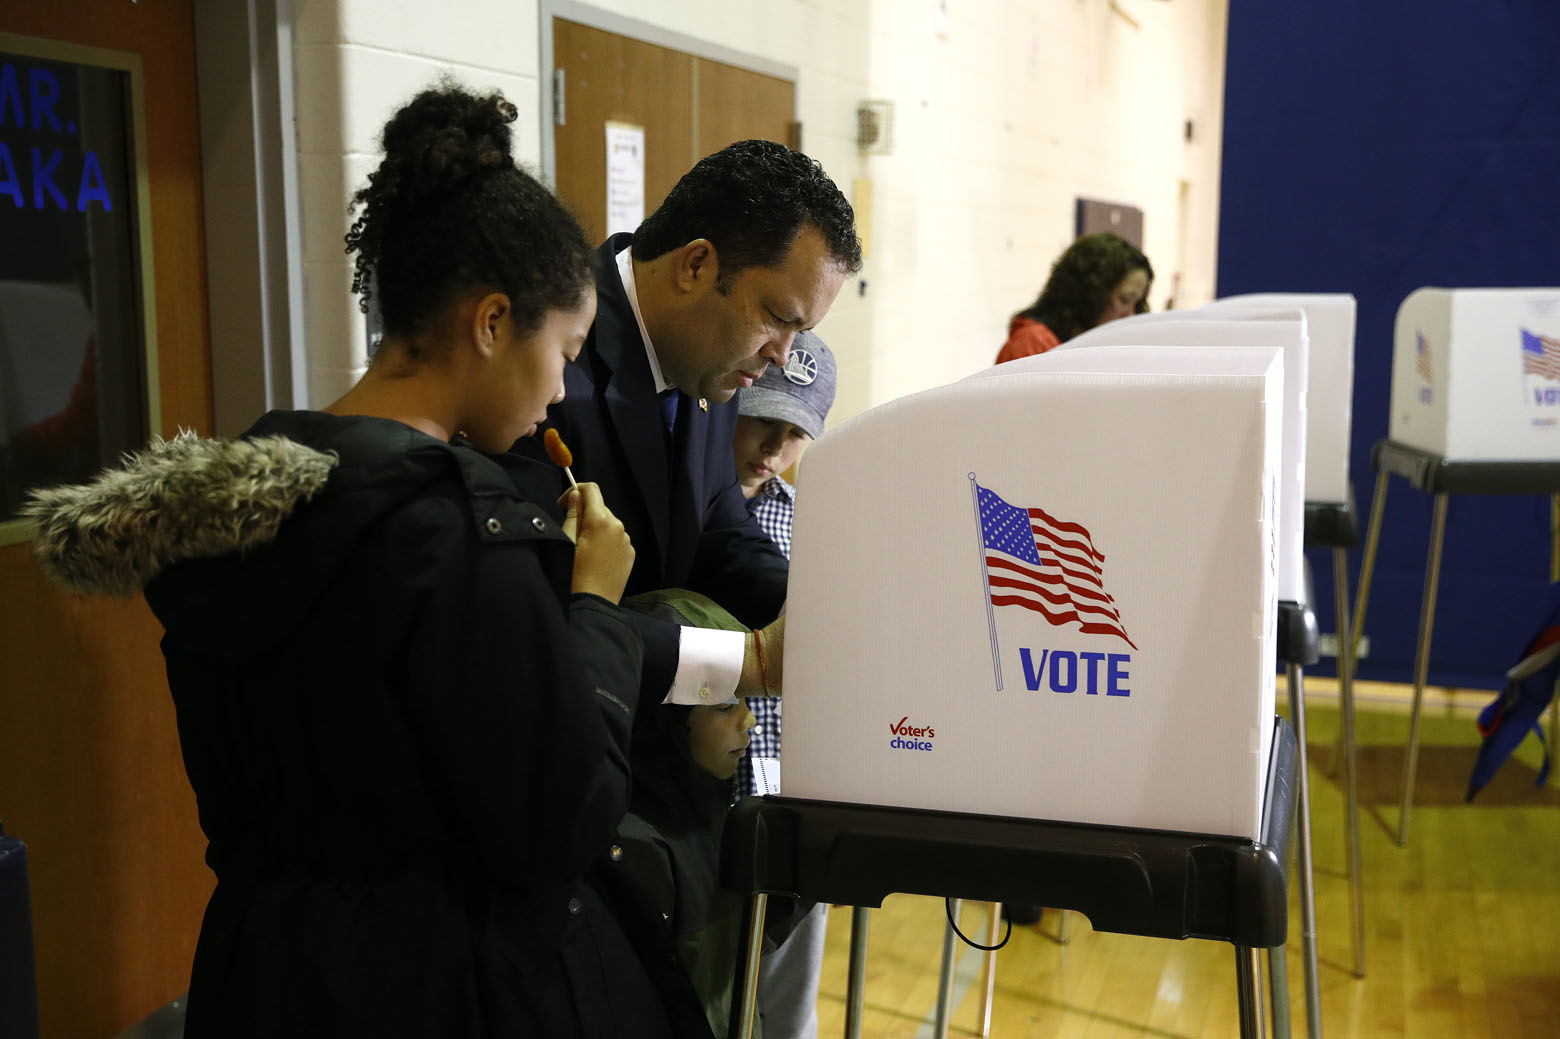 Maryland Democratic gubernatorial candidate Ben Jealous votes Tuesday, Nov. 6, 2018, at a polling place at Lake Shore Elementary School in Pasadena, Md. Jealous is running against incumbent Gov. Larry Hogan. (AP Photo/Patrick Semansky)